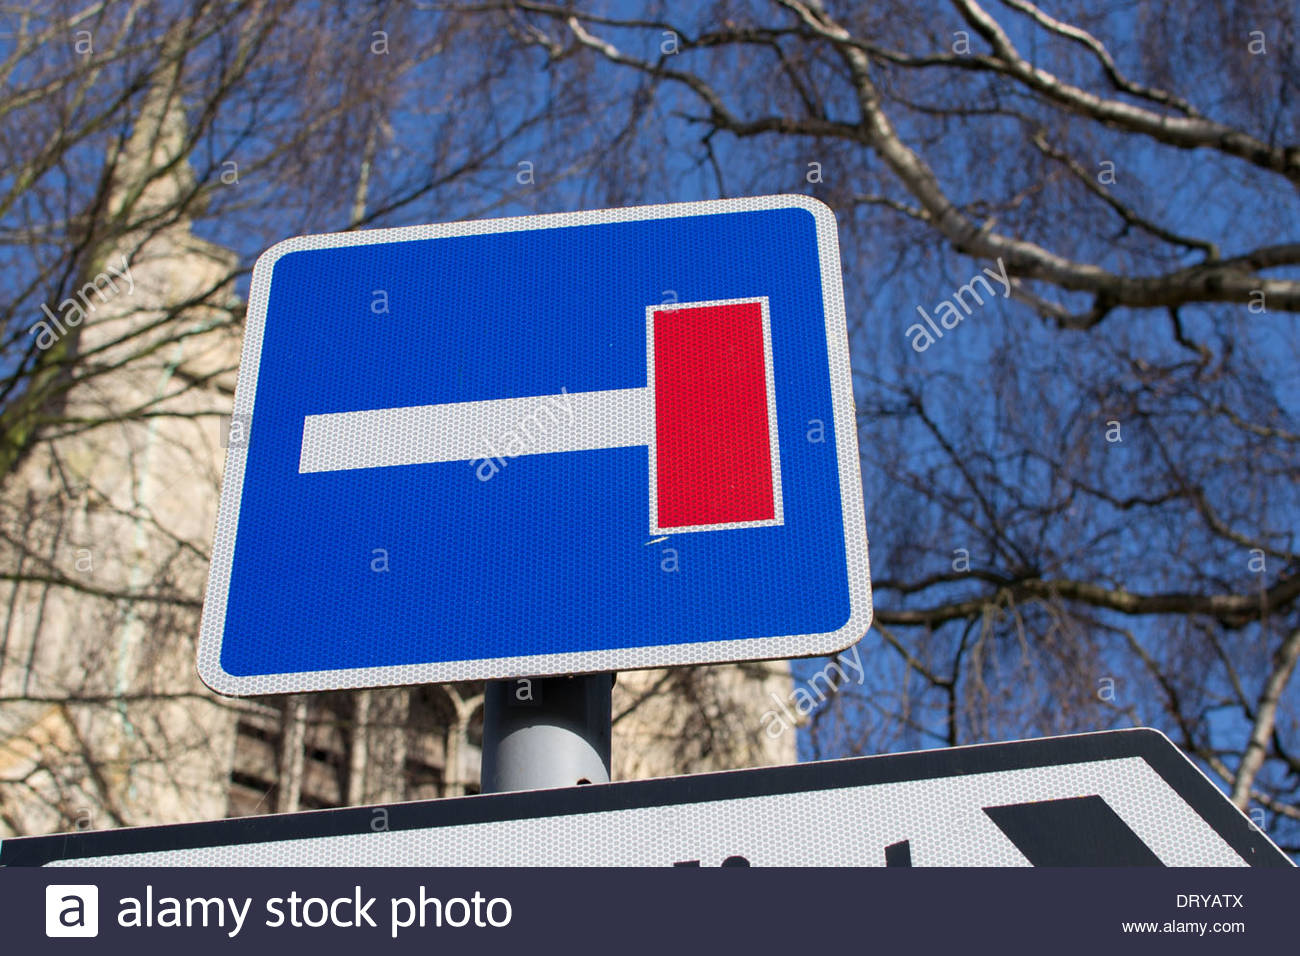 Dead end or cul-de-sac sign to the right - Stock Image